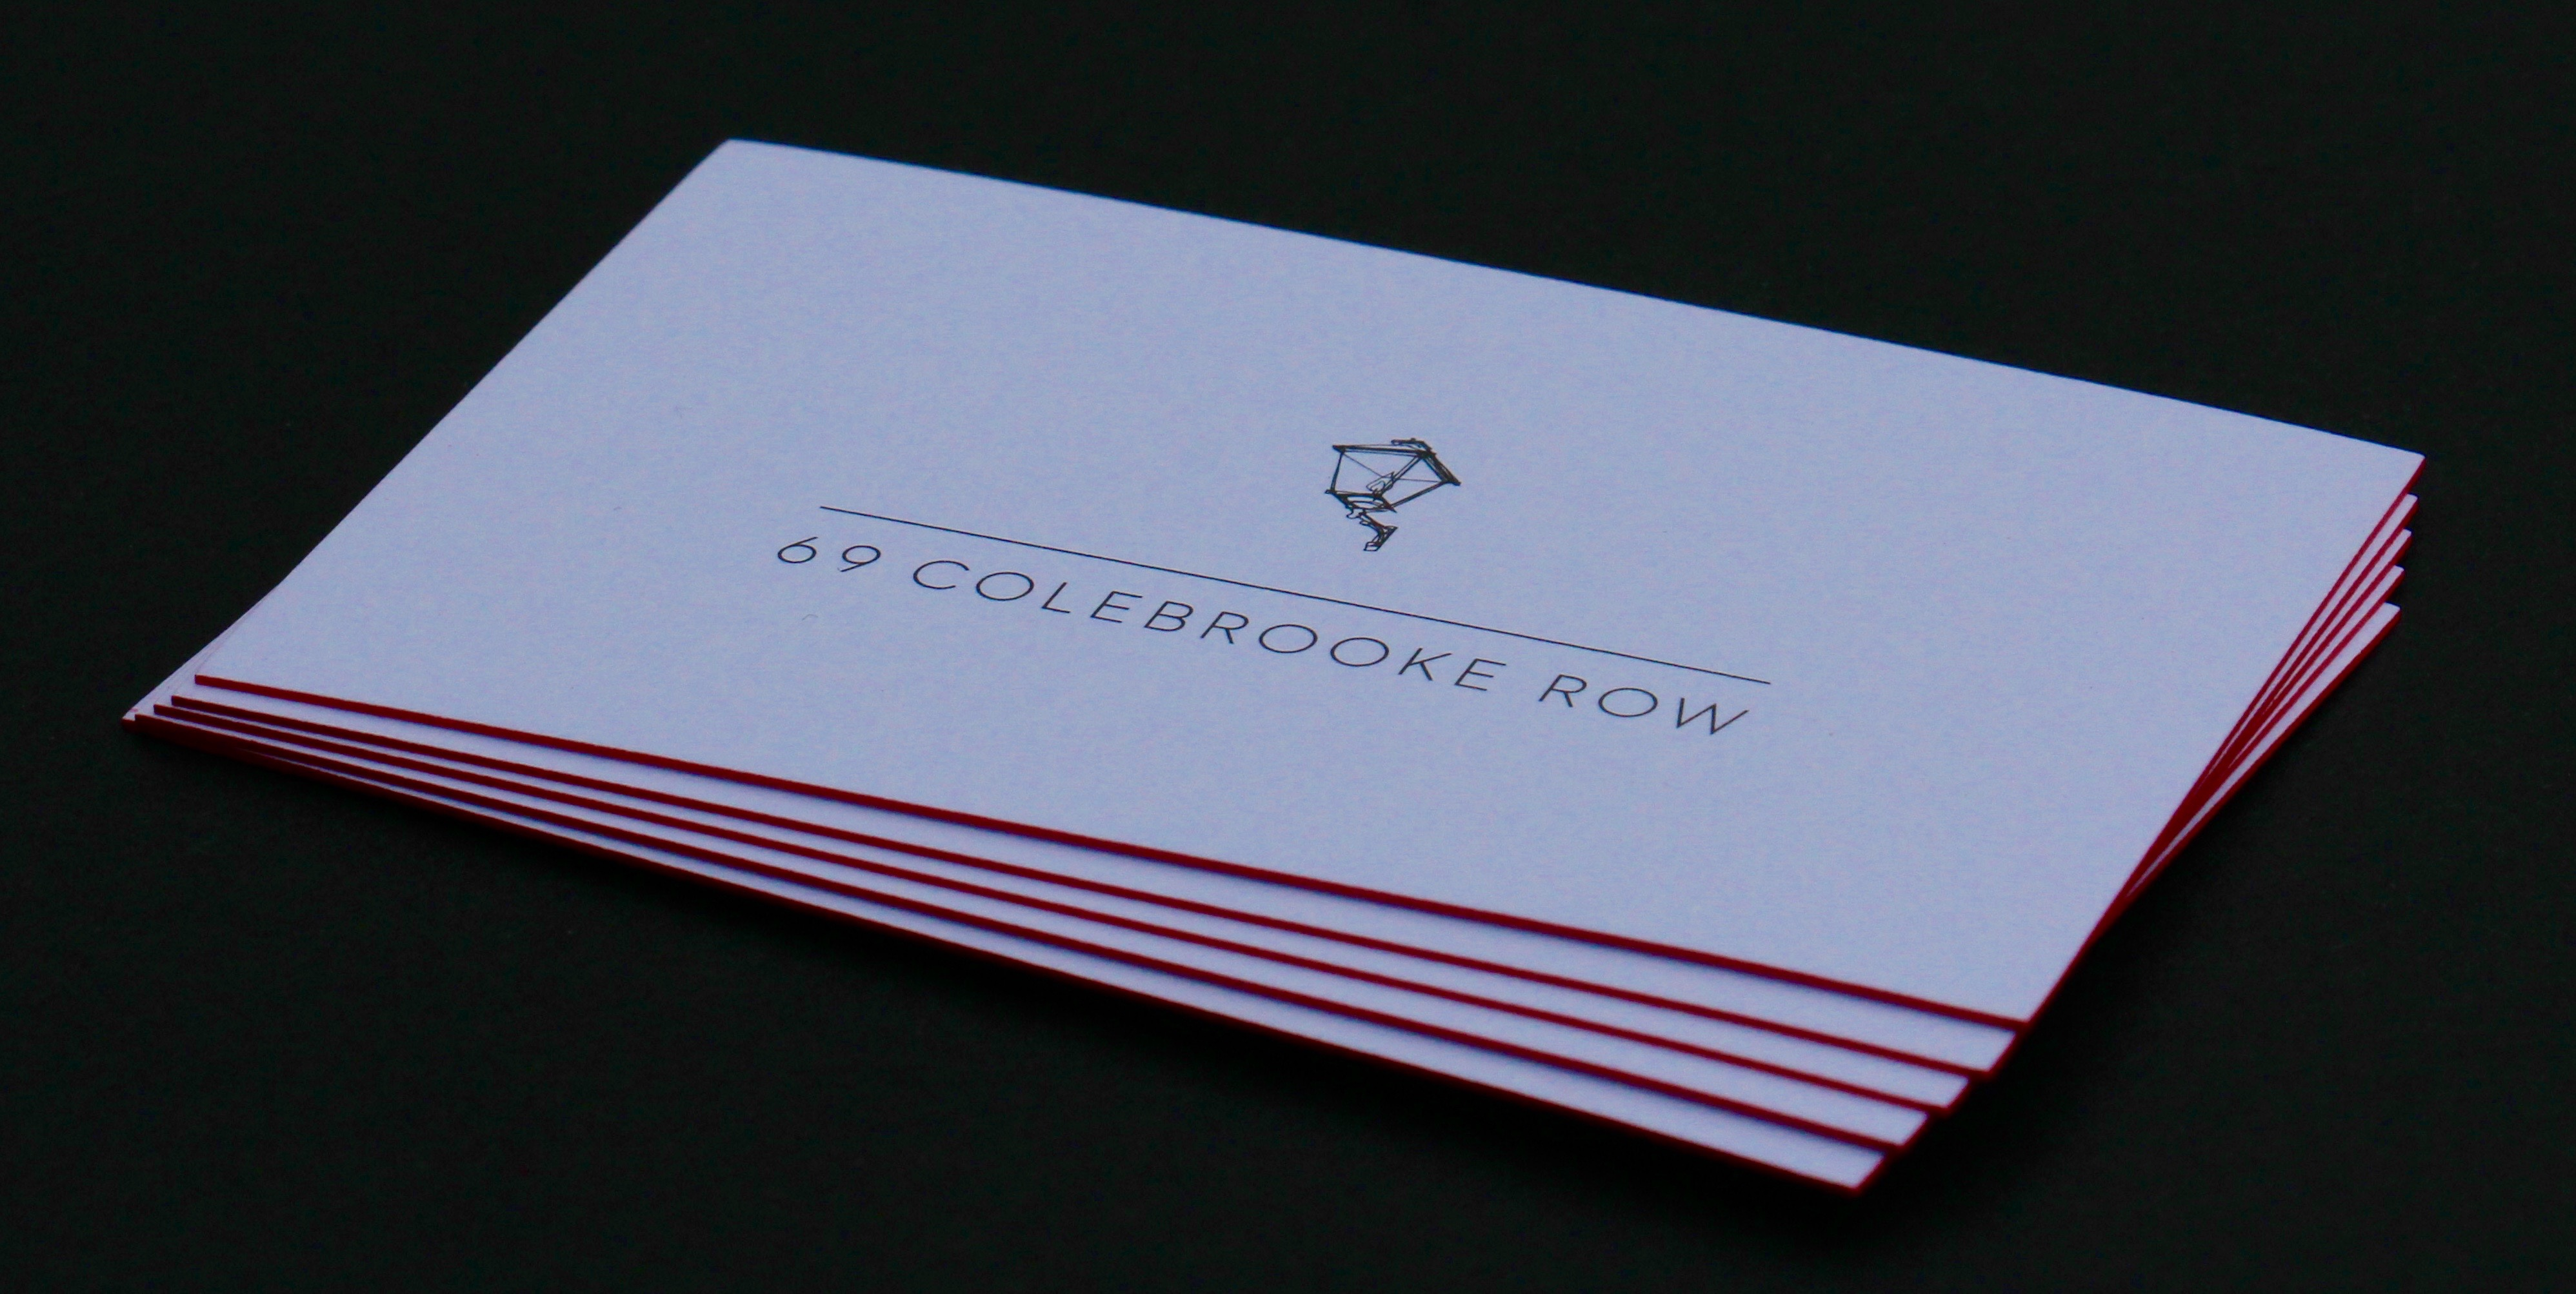 Foil blocked logo in black on a white 330gsm board with red edge paint